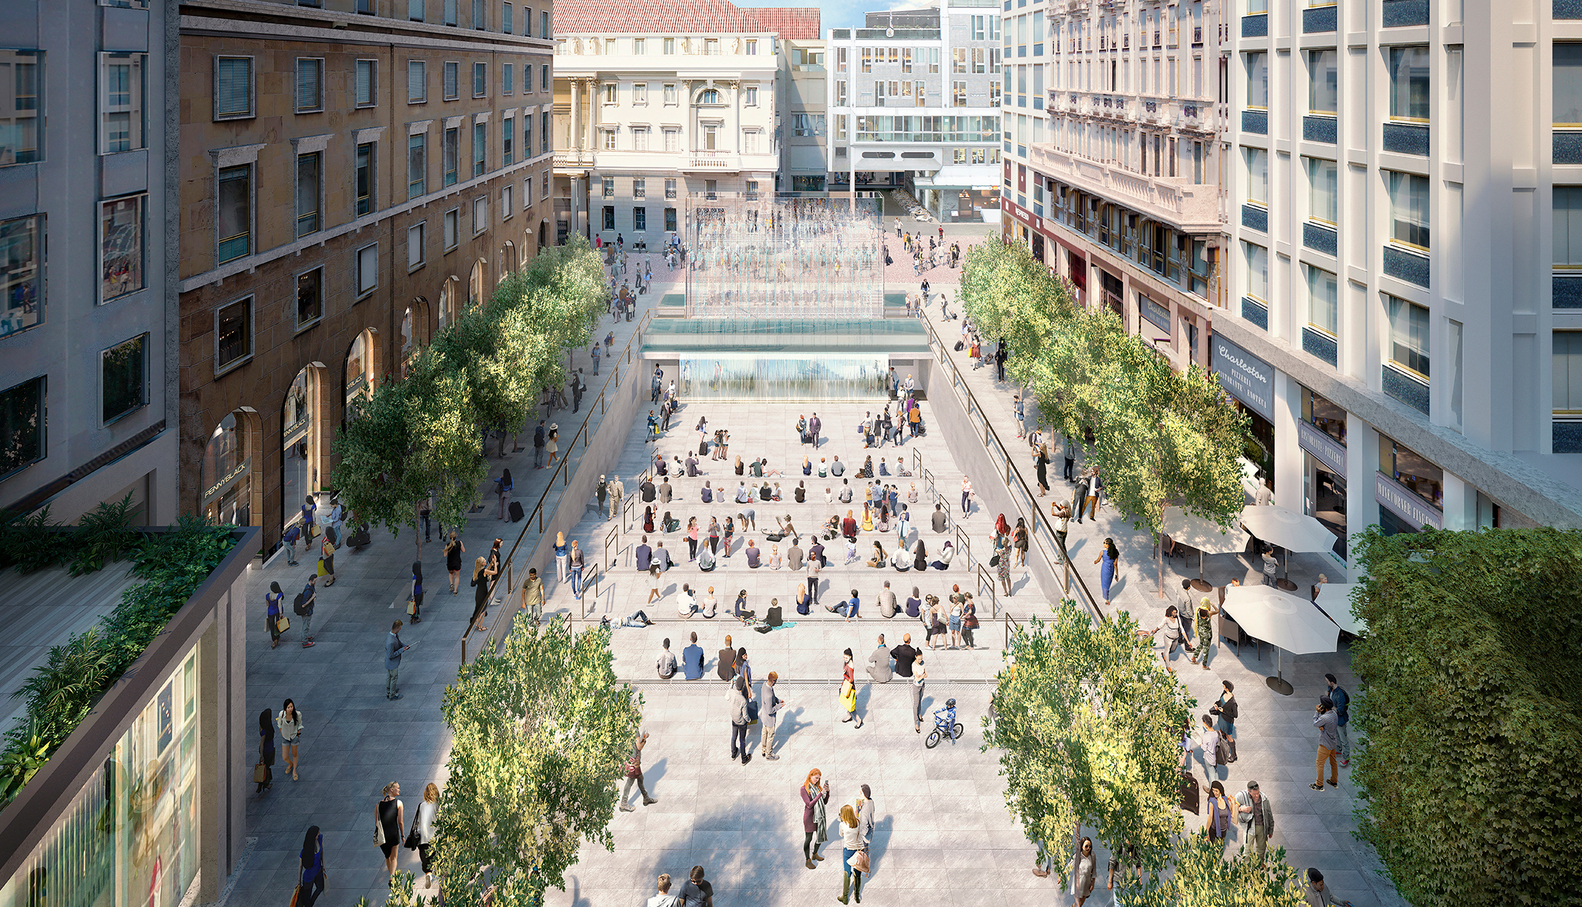 Proposed Apple 'Flagship' Store, Piazza del Liberty, Milan | image: Apple